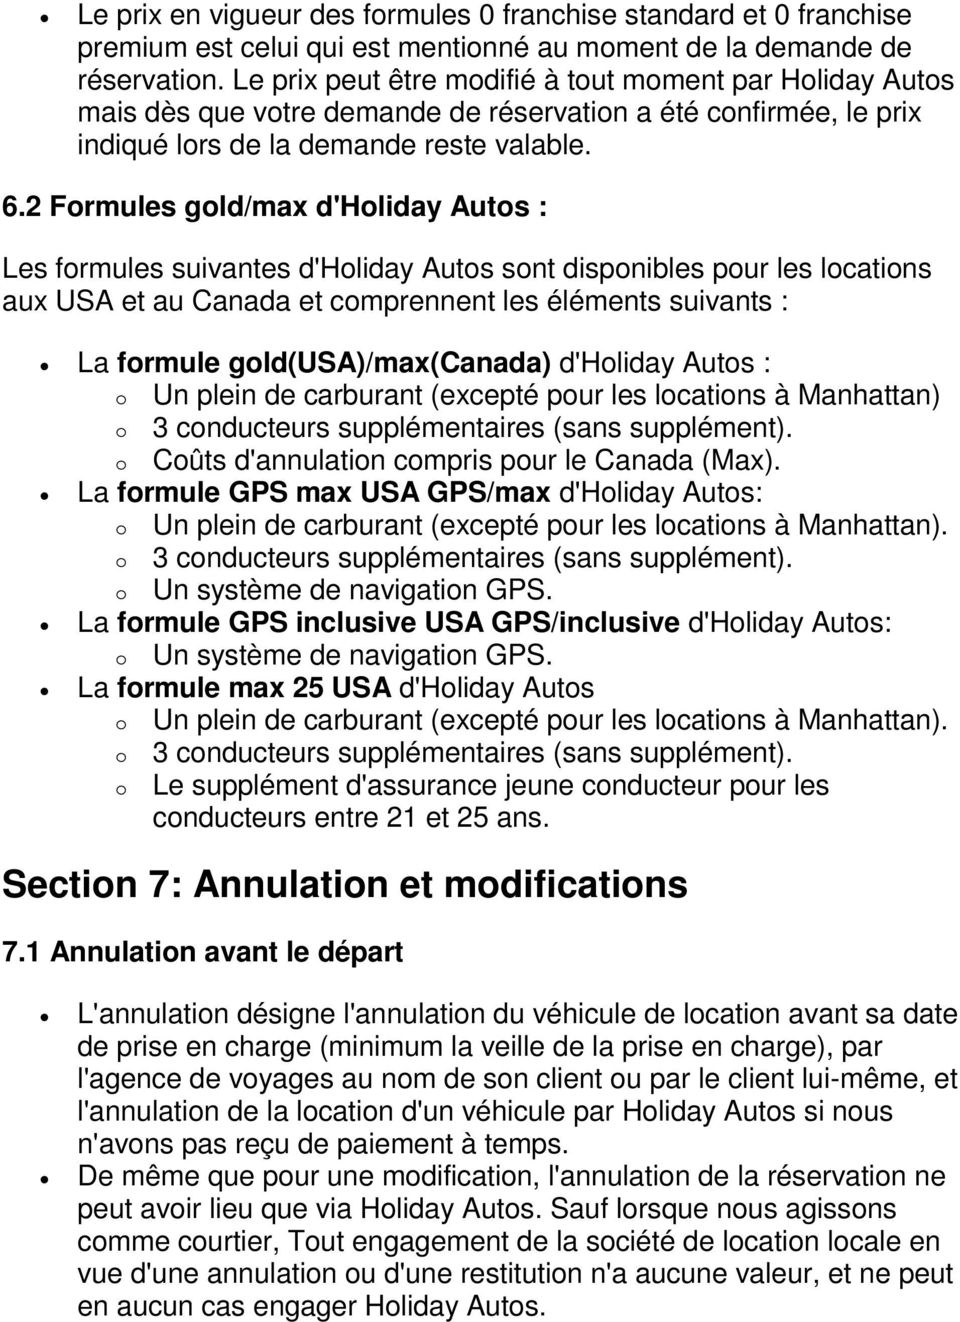 2 Formules gold/max d'holiday Autos : Les formules suivantes d'holiday Autos sont disponibles pour les locations aux USA et au Canada et comprennent les éléments suivants : La formule